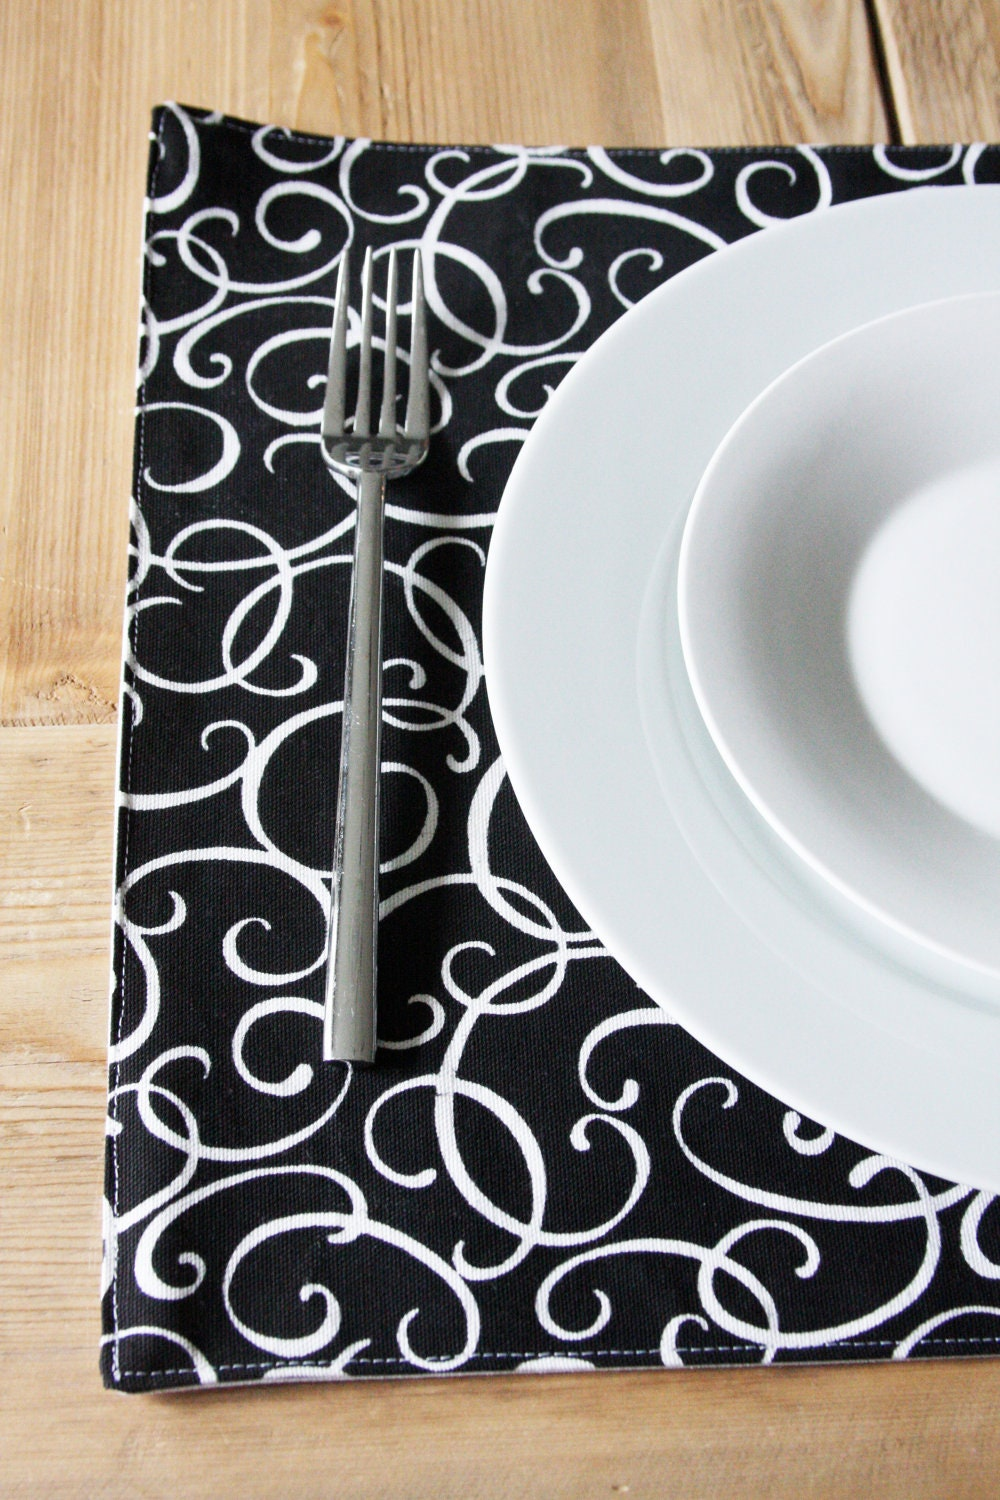 cotton placemats black and white squiggles set of 4 by izyandoly. Black Bedroom Furniture Sets. Home Design Ideas